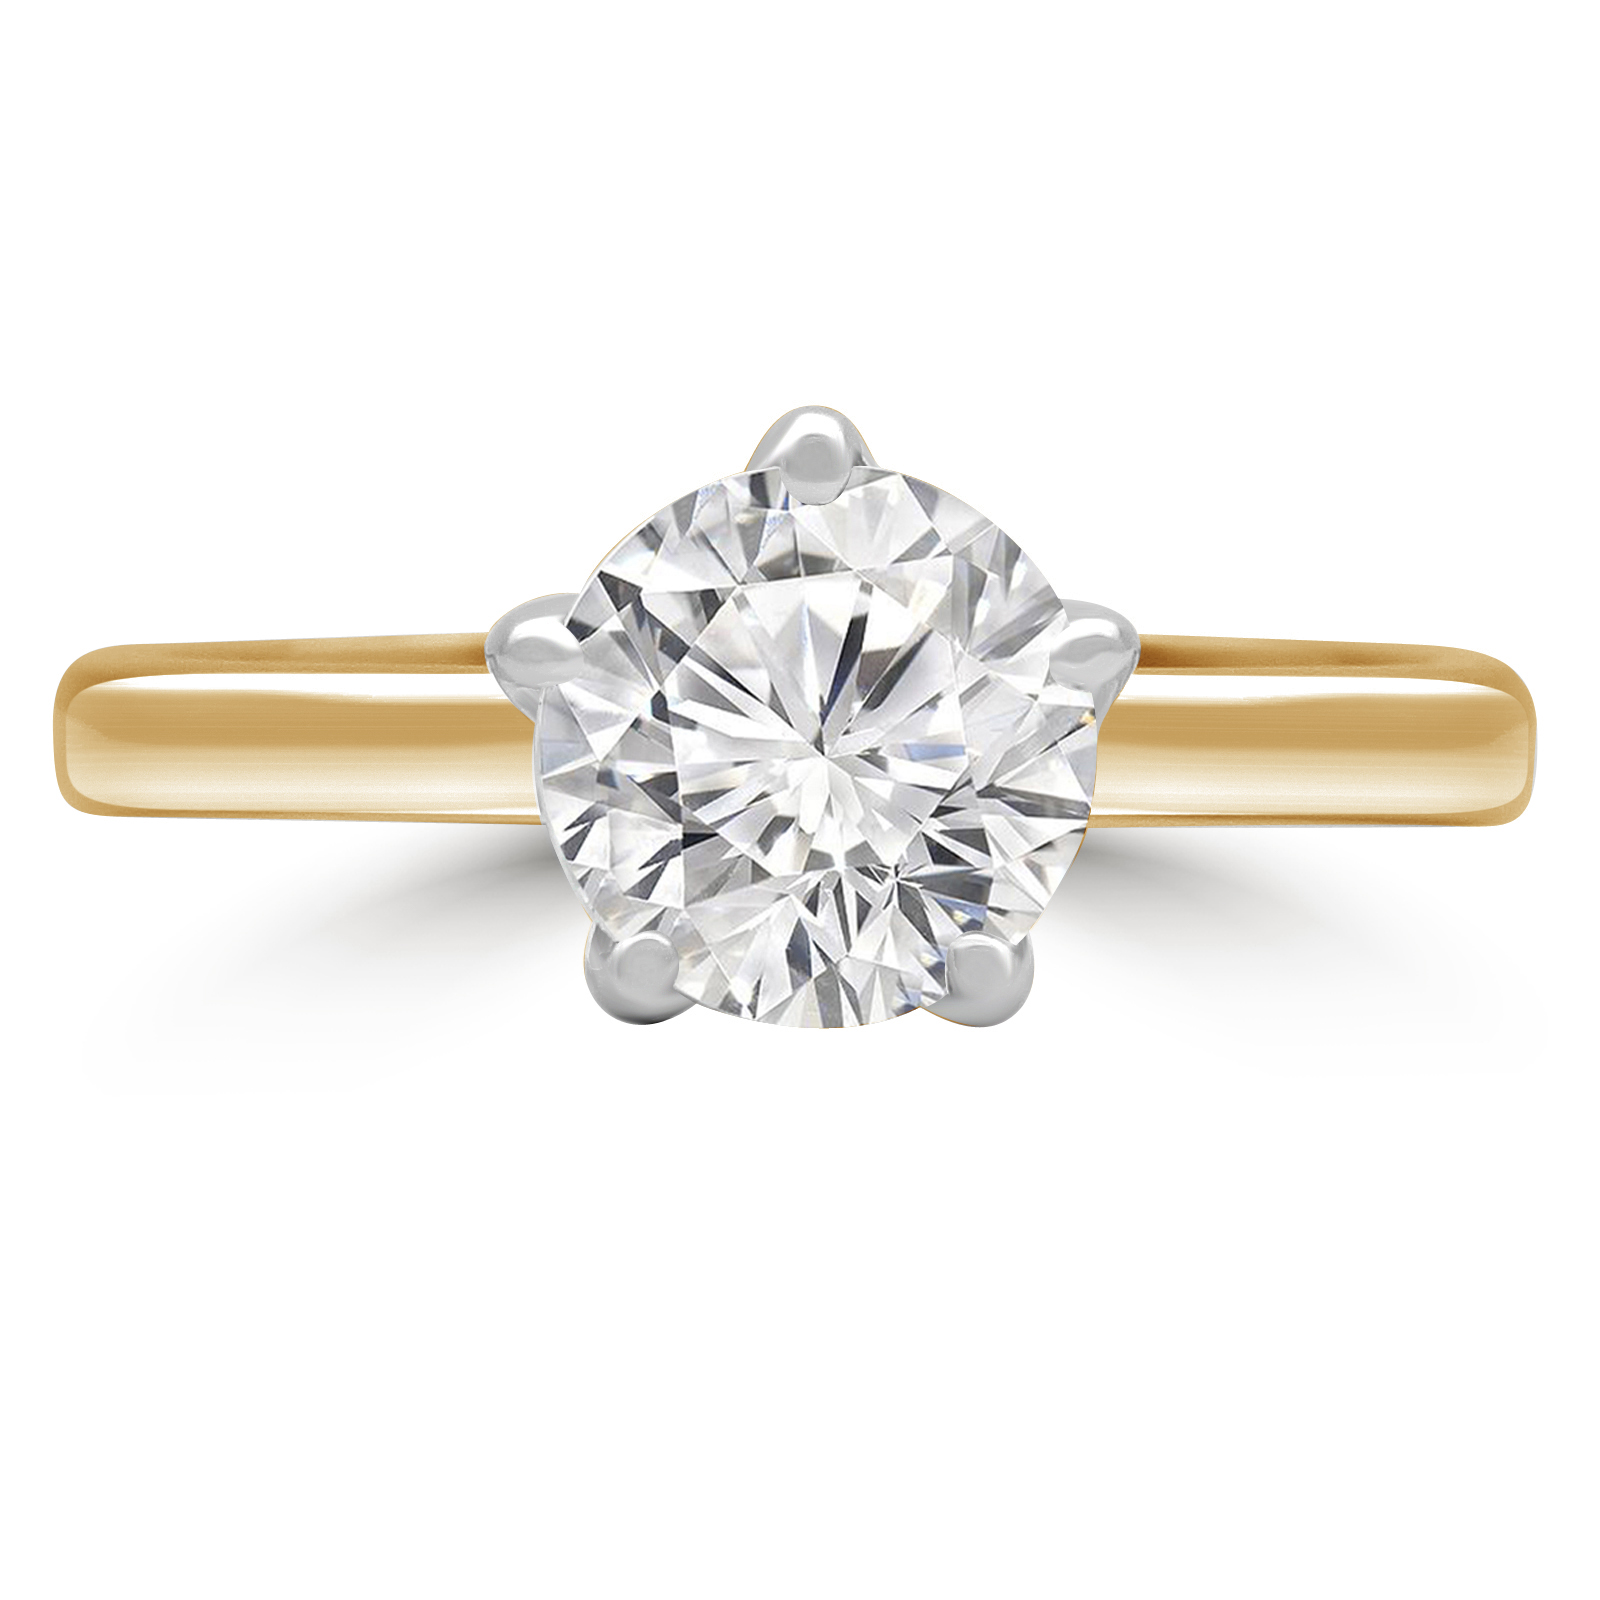 1 1/5 CT Round Diamond Solitaire Engagement Ring in 14K Two-Tone Gold (MD180439) - image 1 de 2